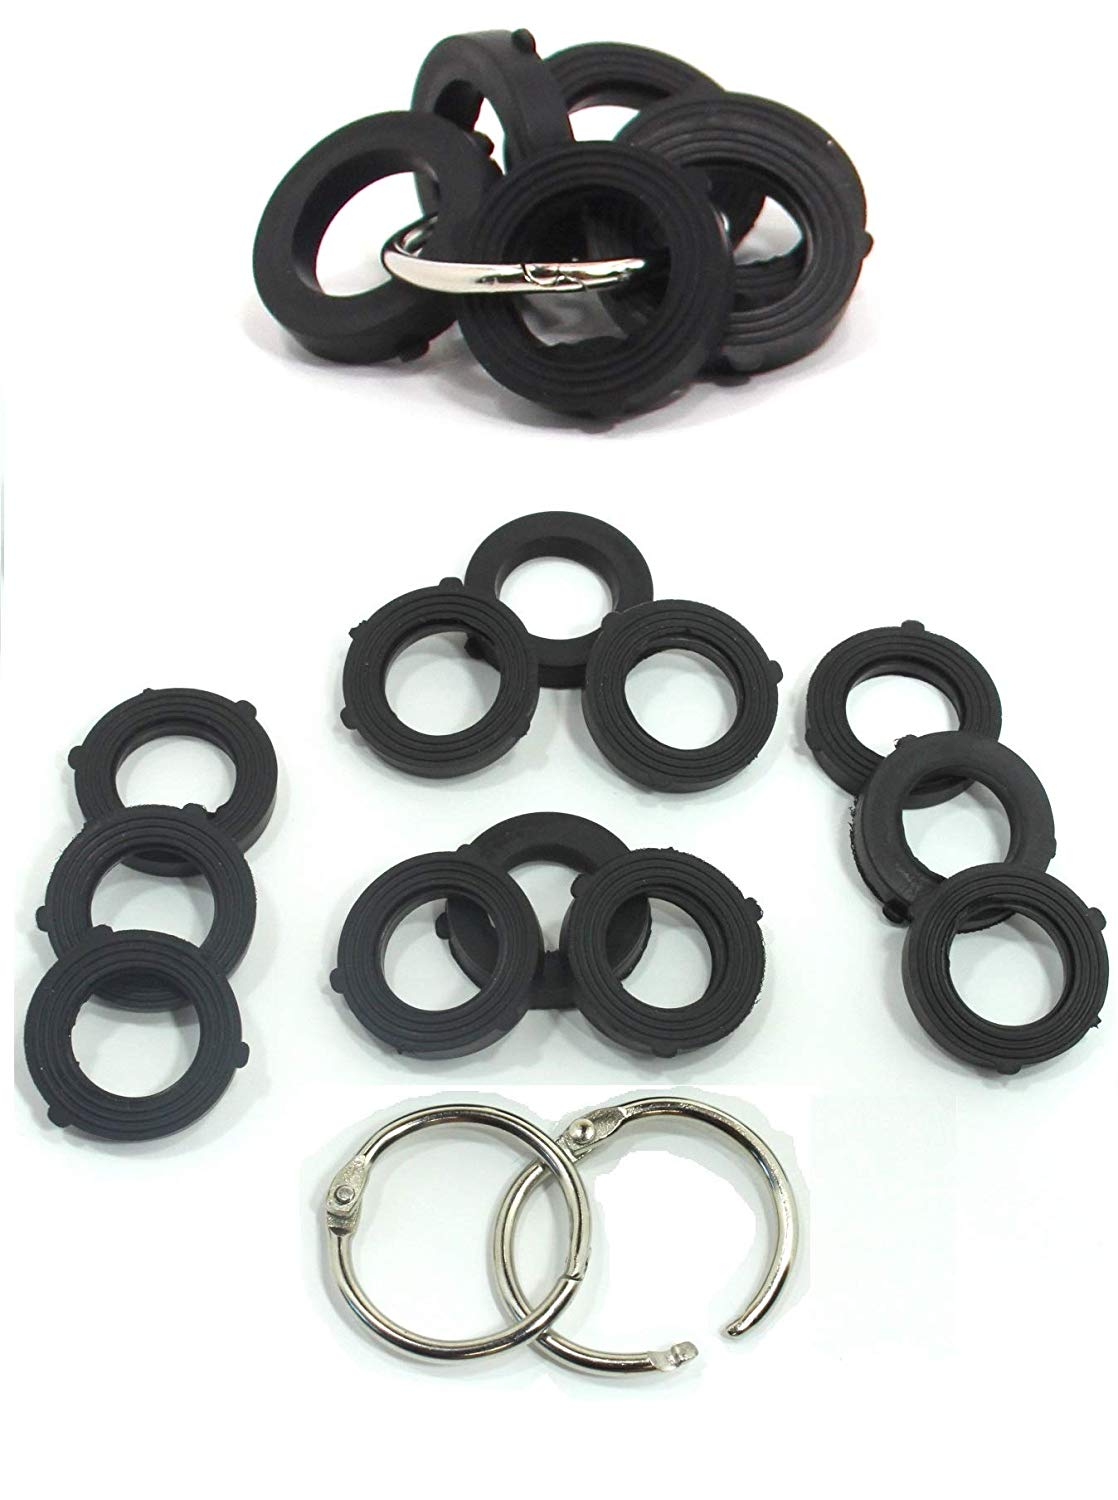 Get Quotations Rubber Garden Hose Washer Standard Size Gasket With Retention Tabs Includes 3 Convenient Metal